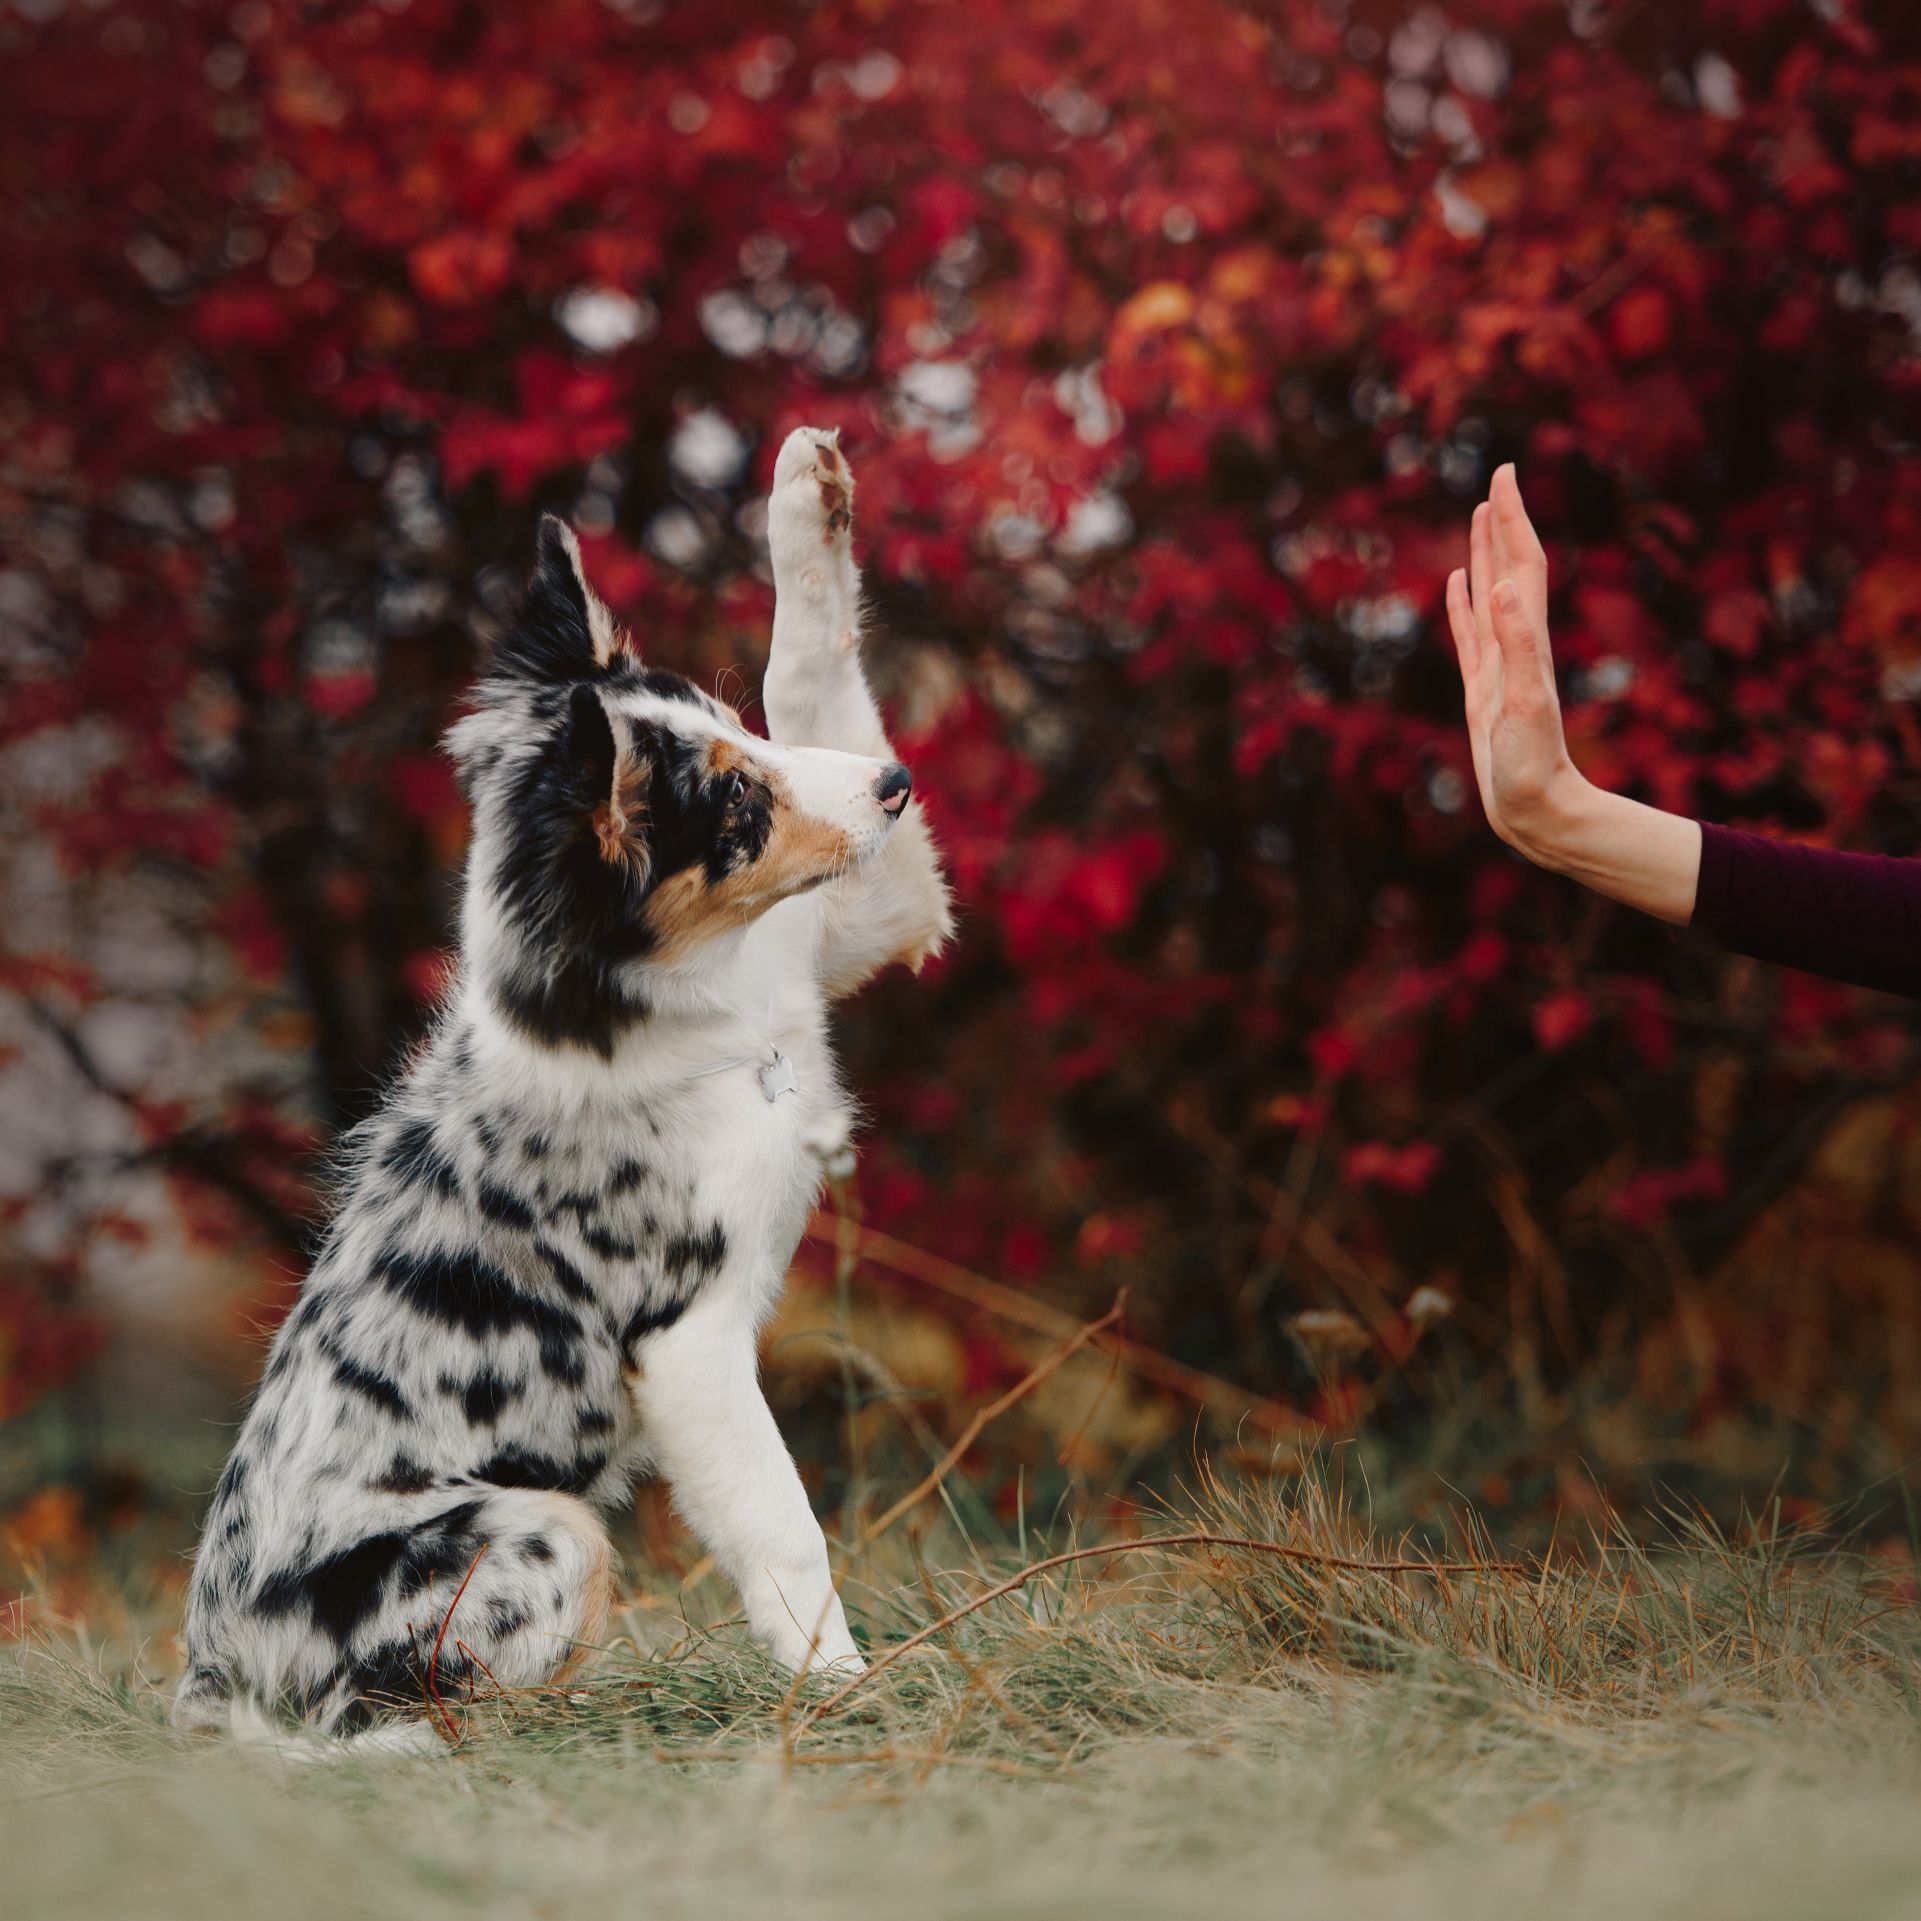 A pet gives a woman a high five.